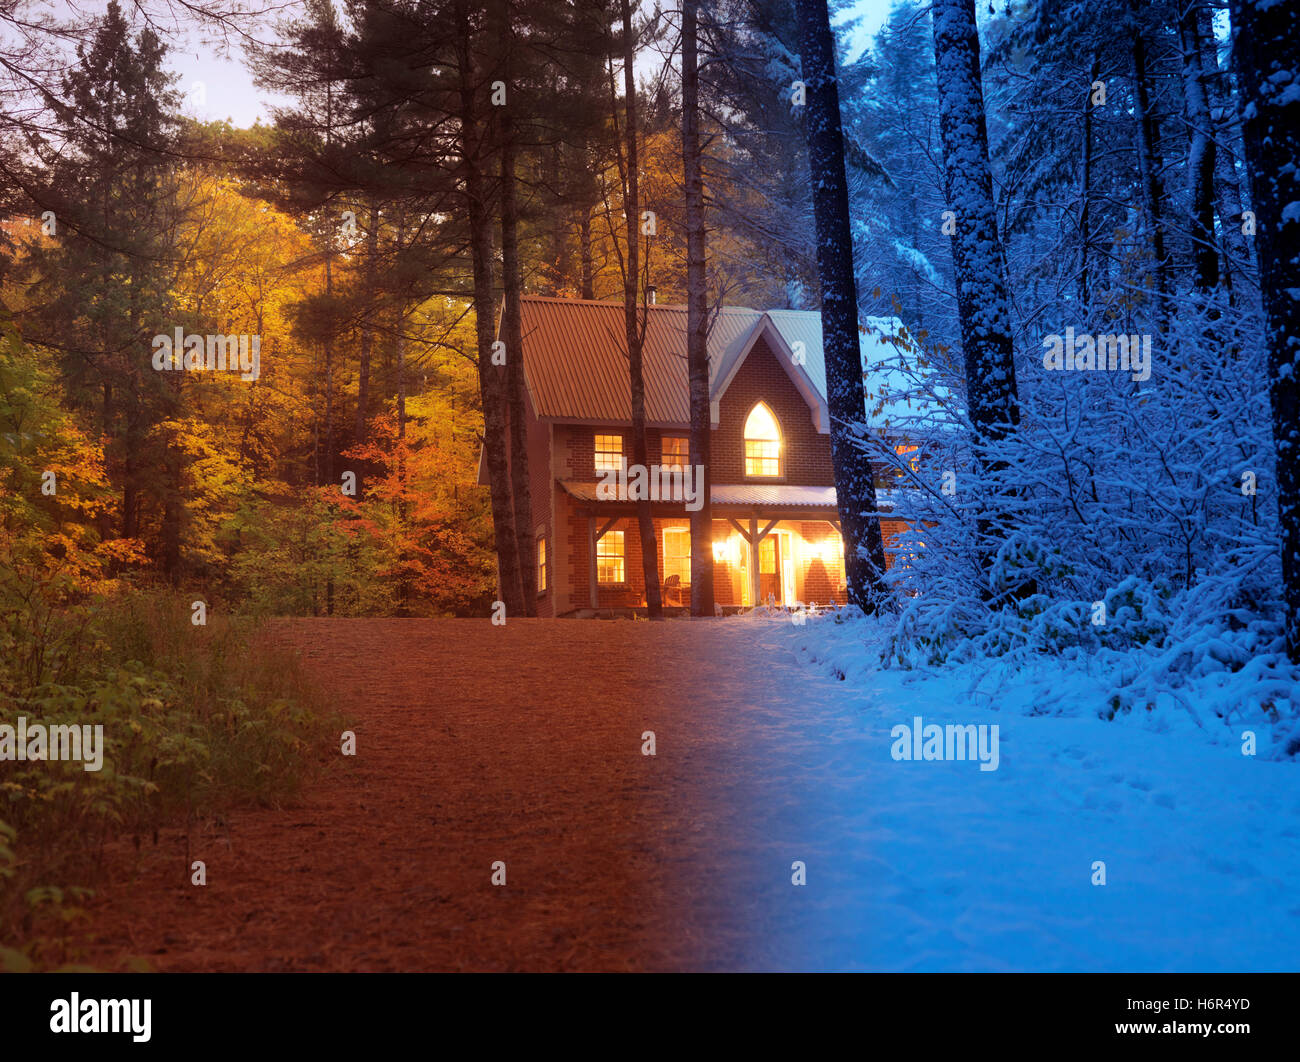 Artistic concept of a country house between colorful fall and snowy winter seasons in a beautiful nature scenery - Stock Image